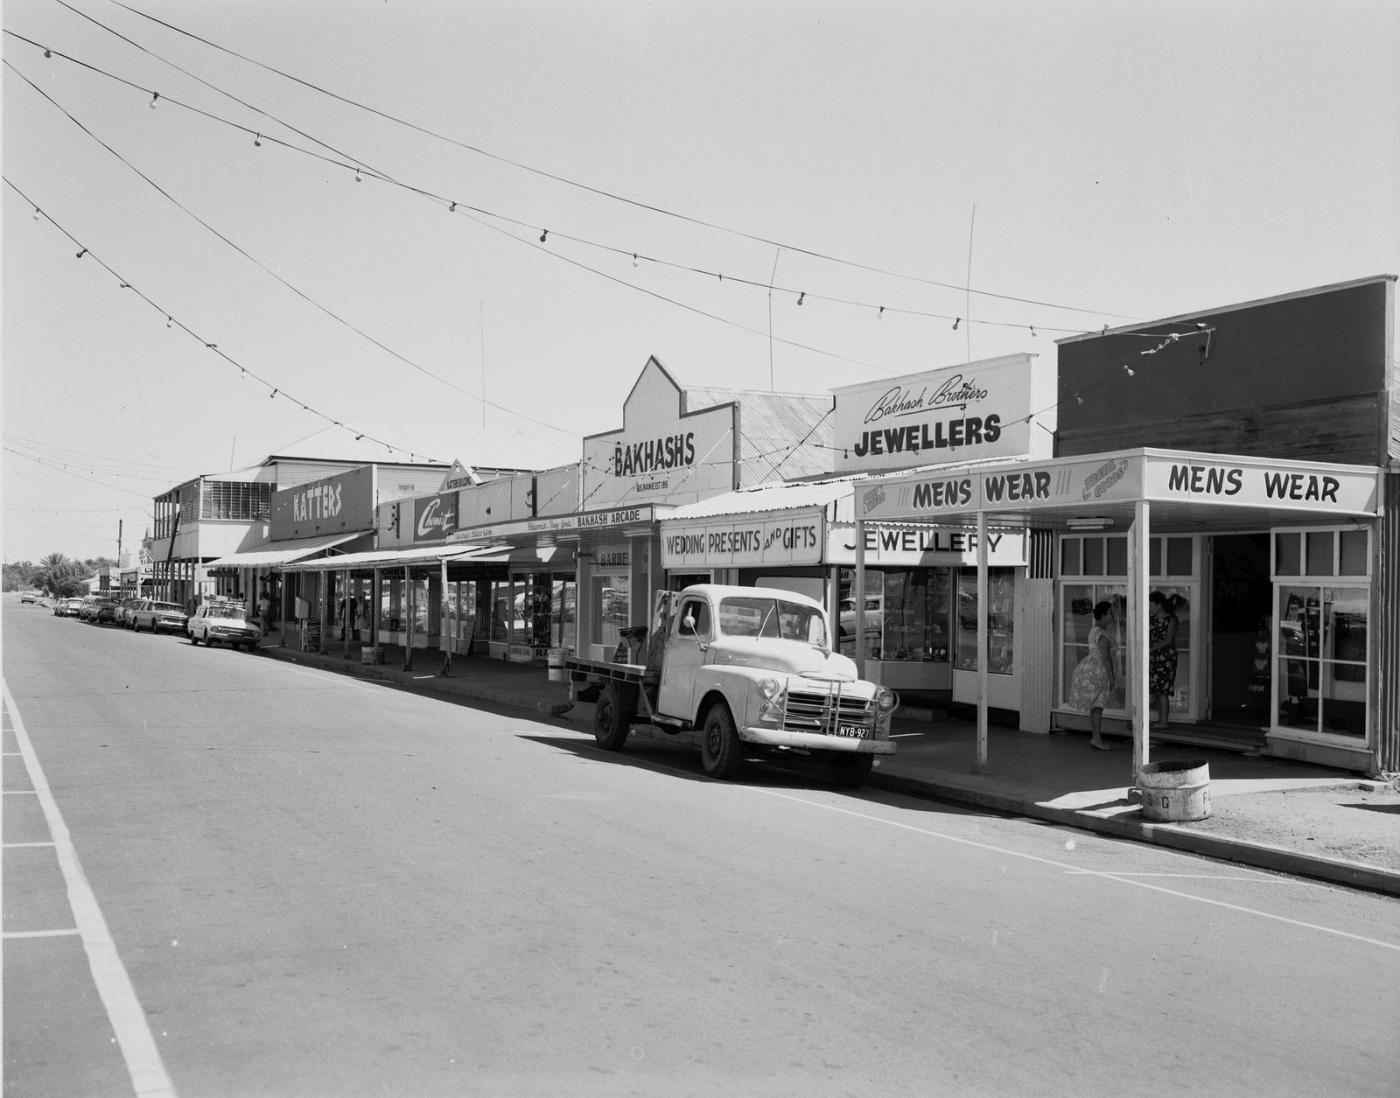 Main Street of Cloncurry showing a truck parked in front of a row of shops